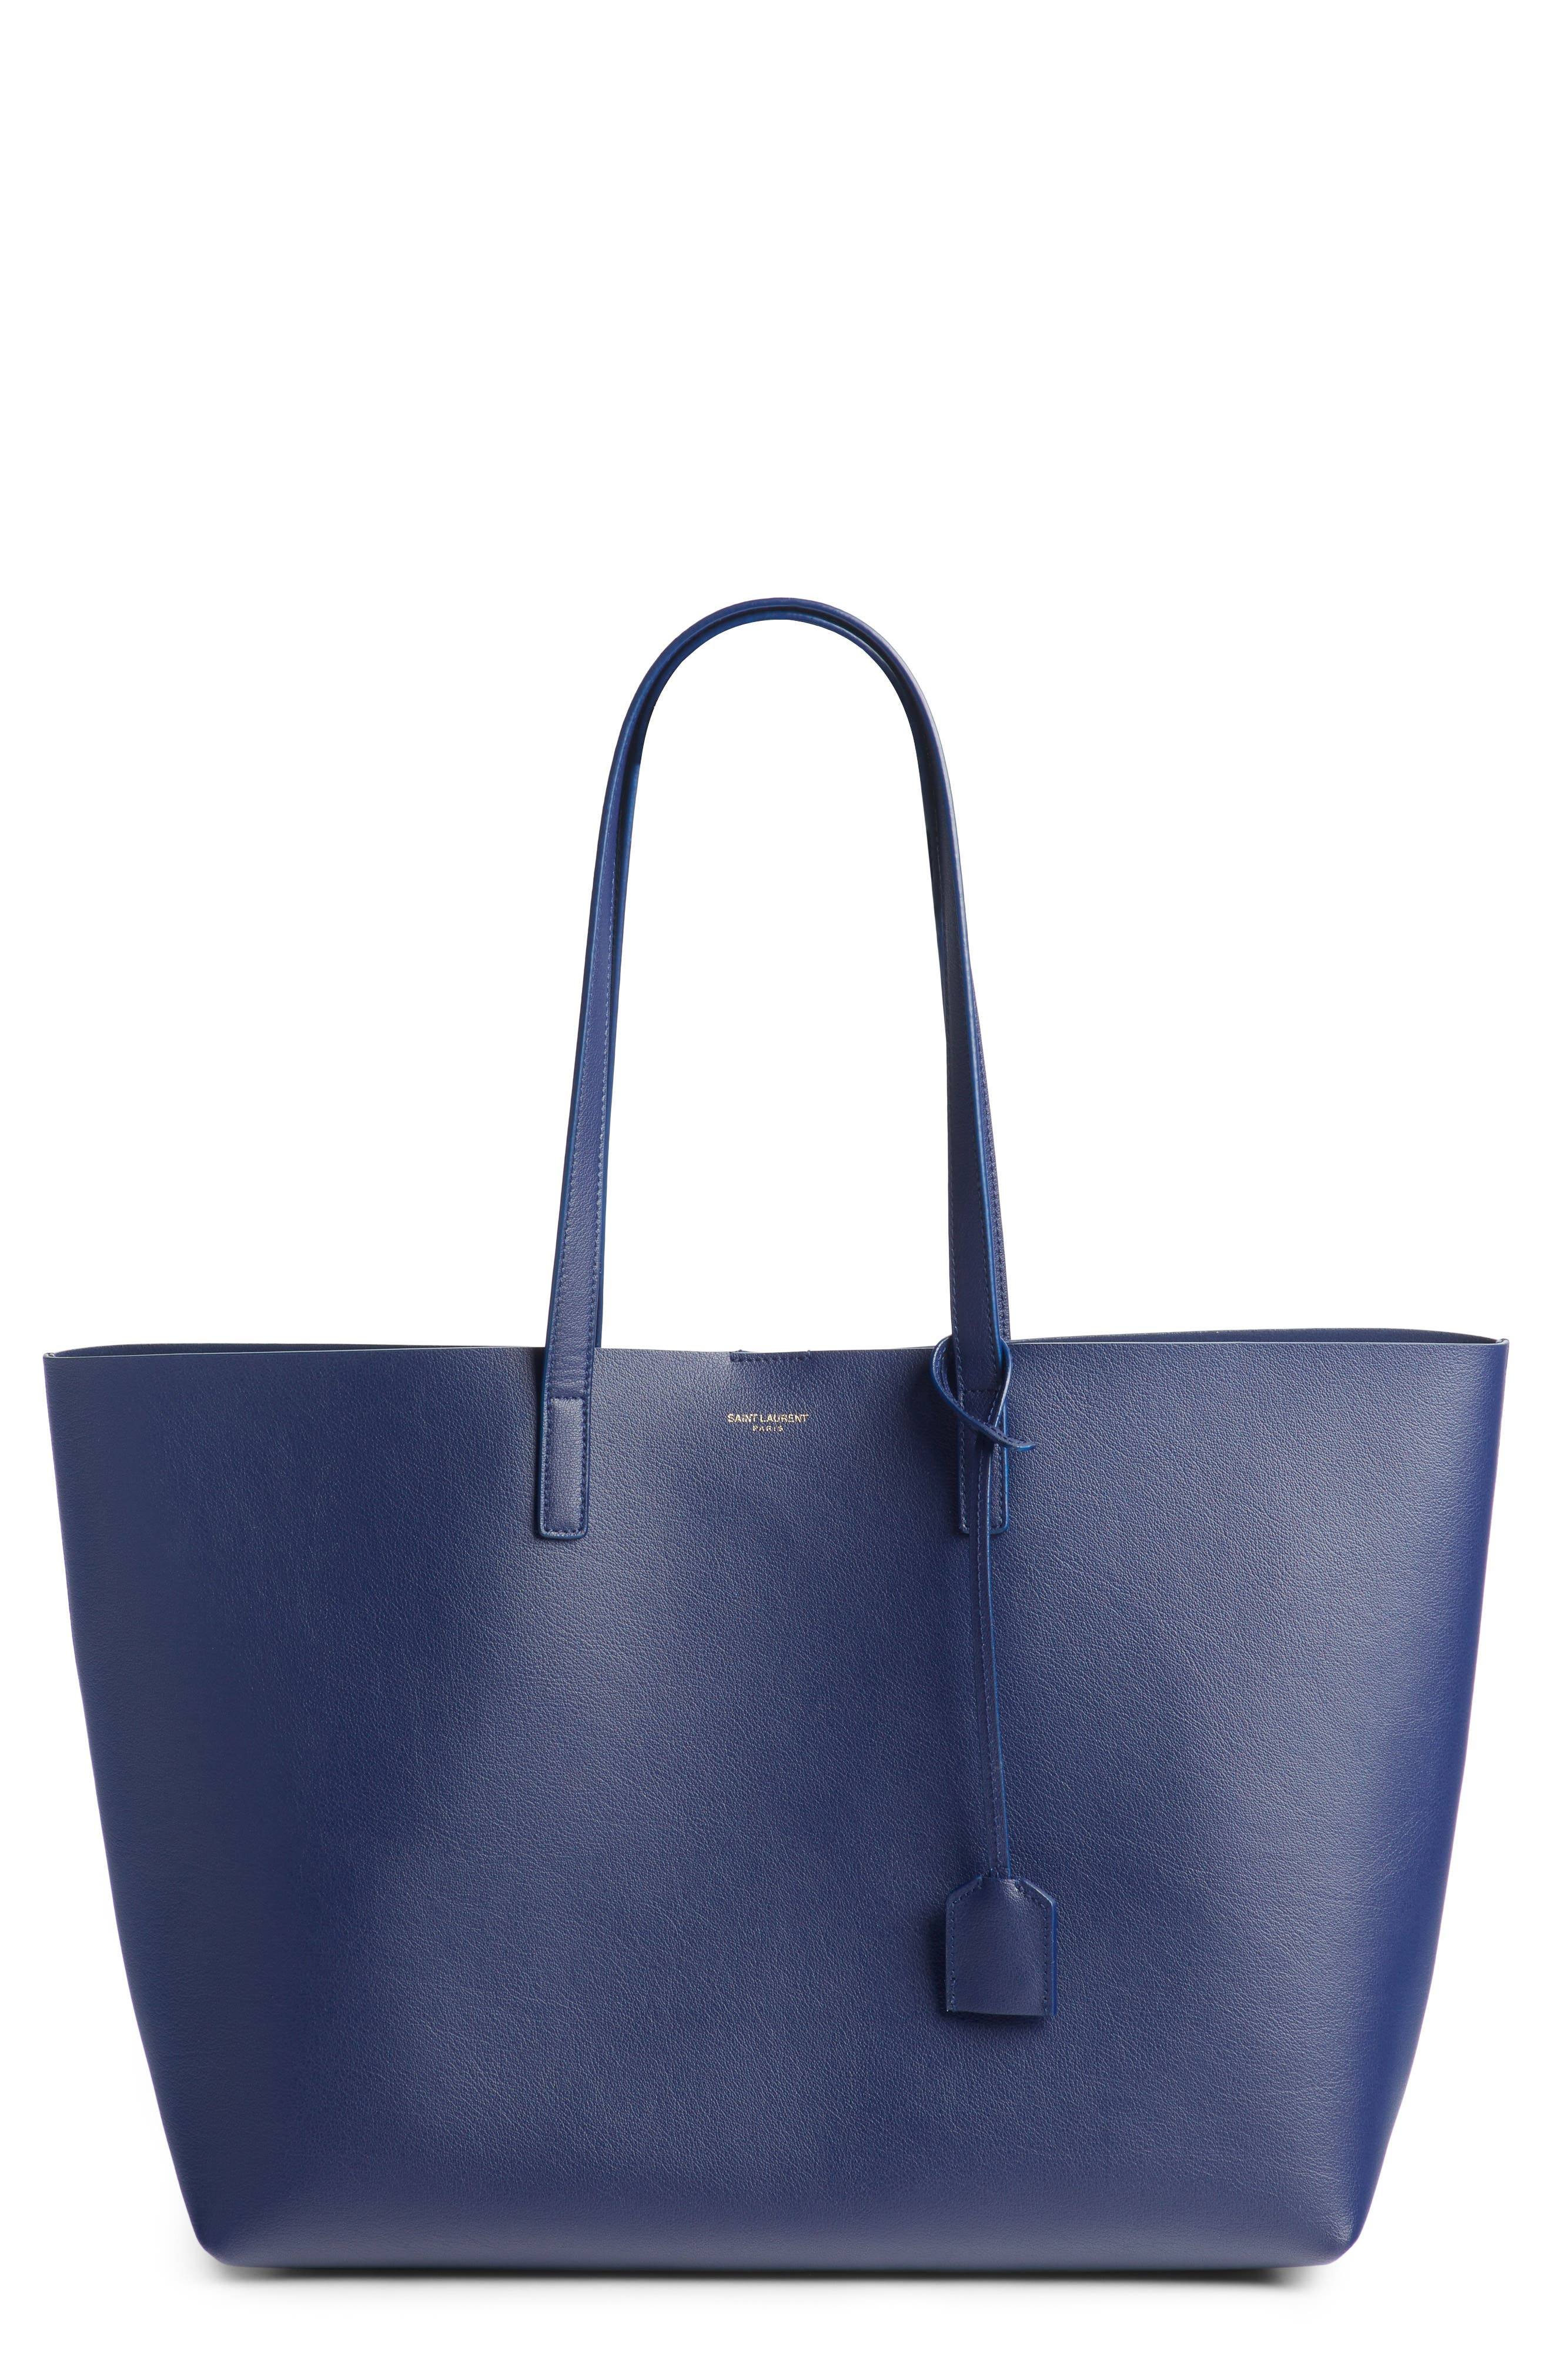 East West Shopping Tote Bag in Saphir